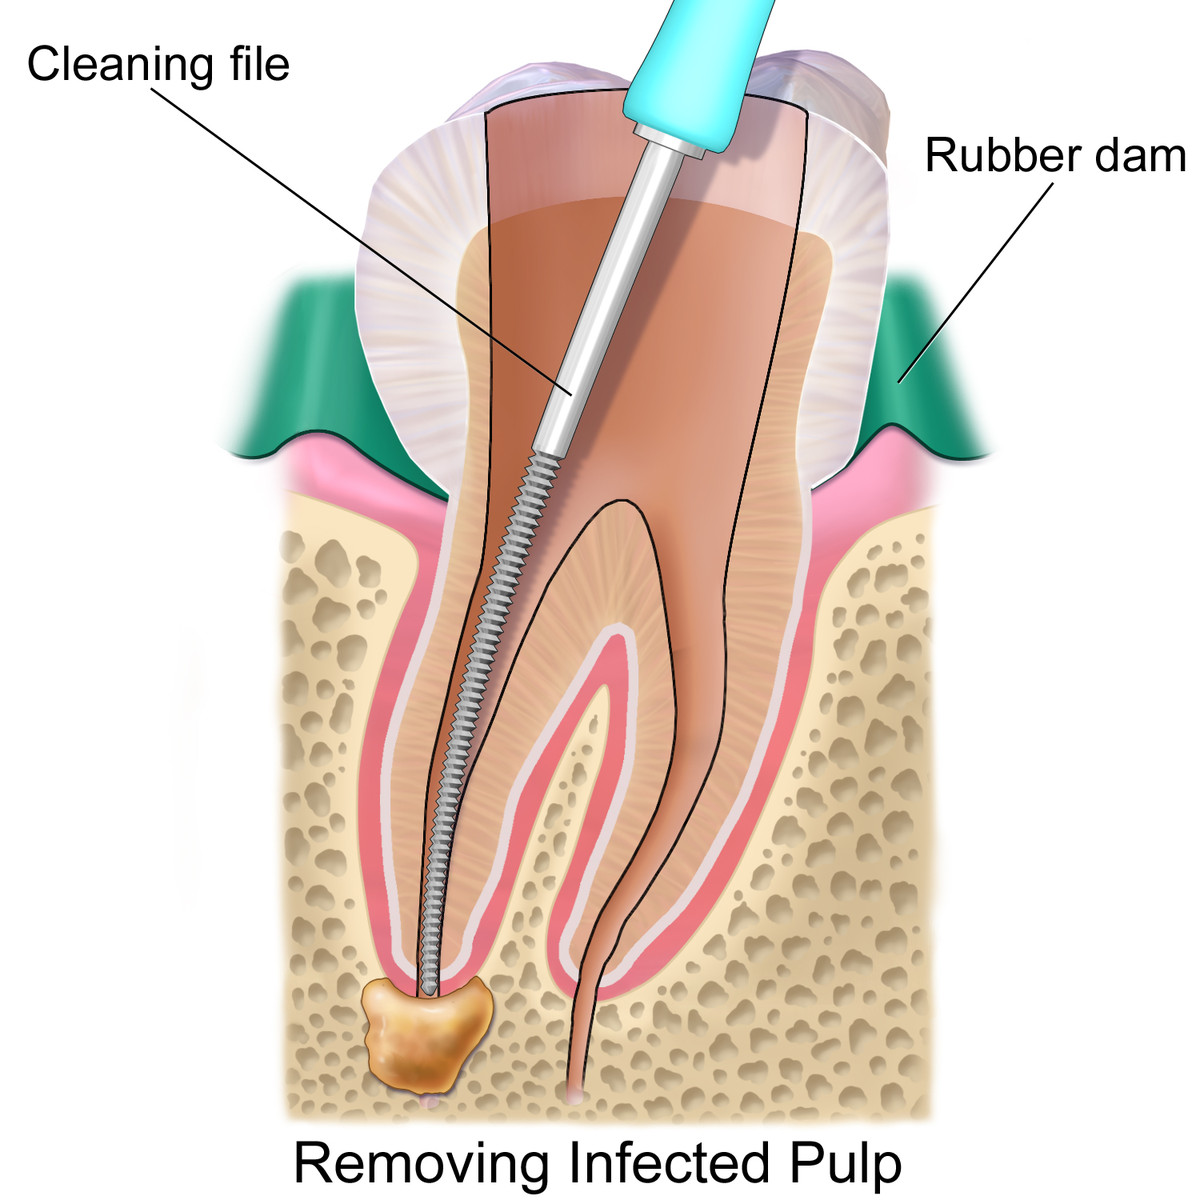 endodontic therapy - wikipedia